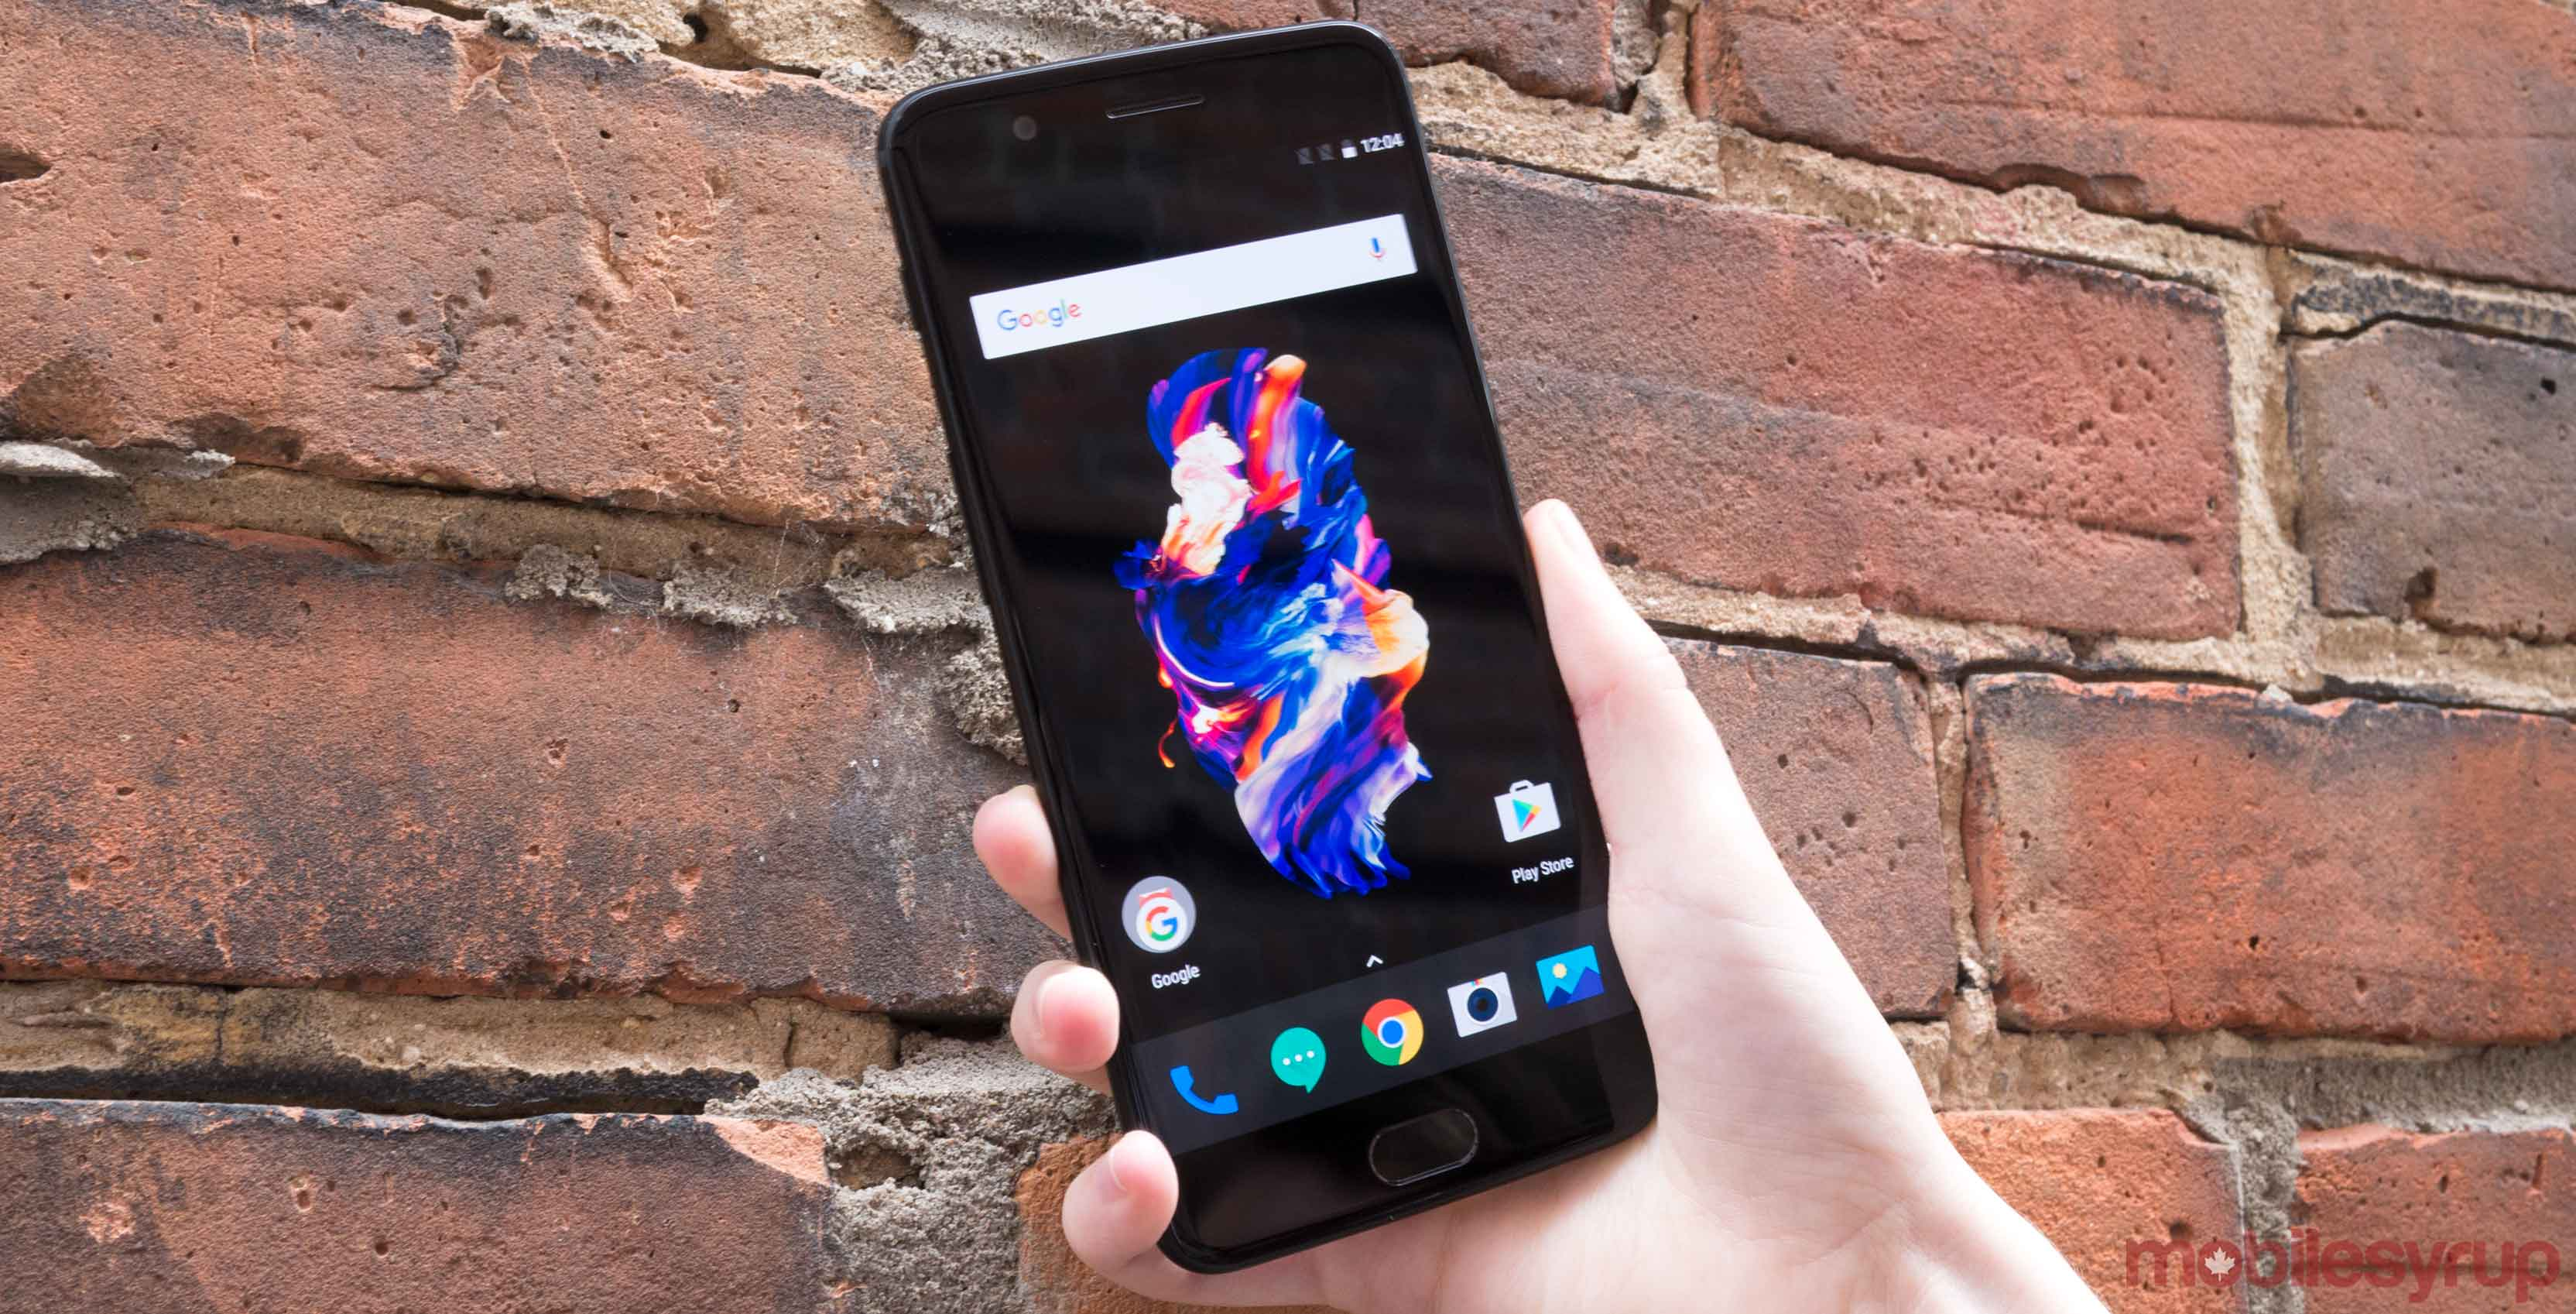 OnePlus 5 front facing